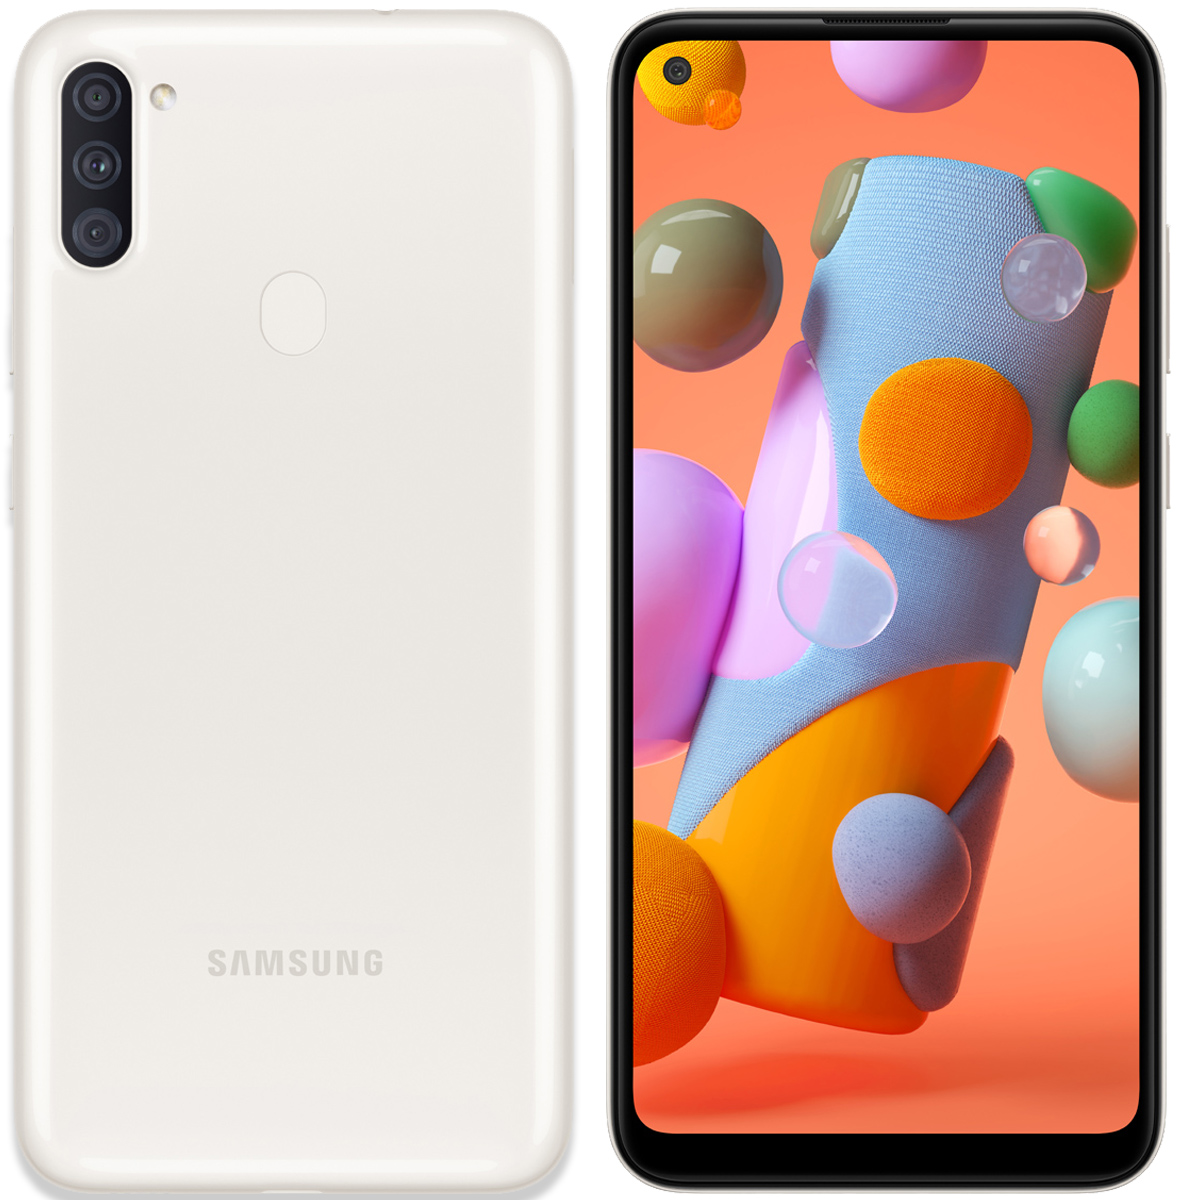 Samsung A11|A115mds 32GB White - New